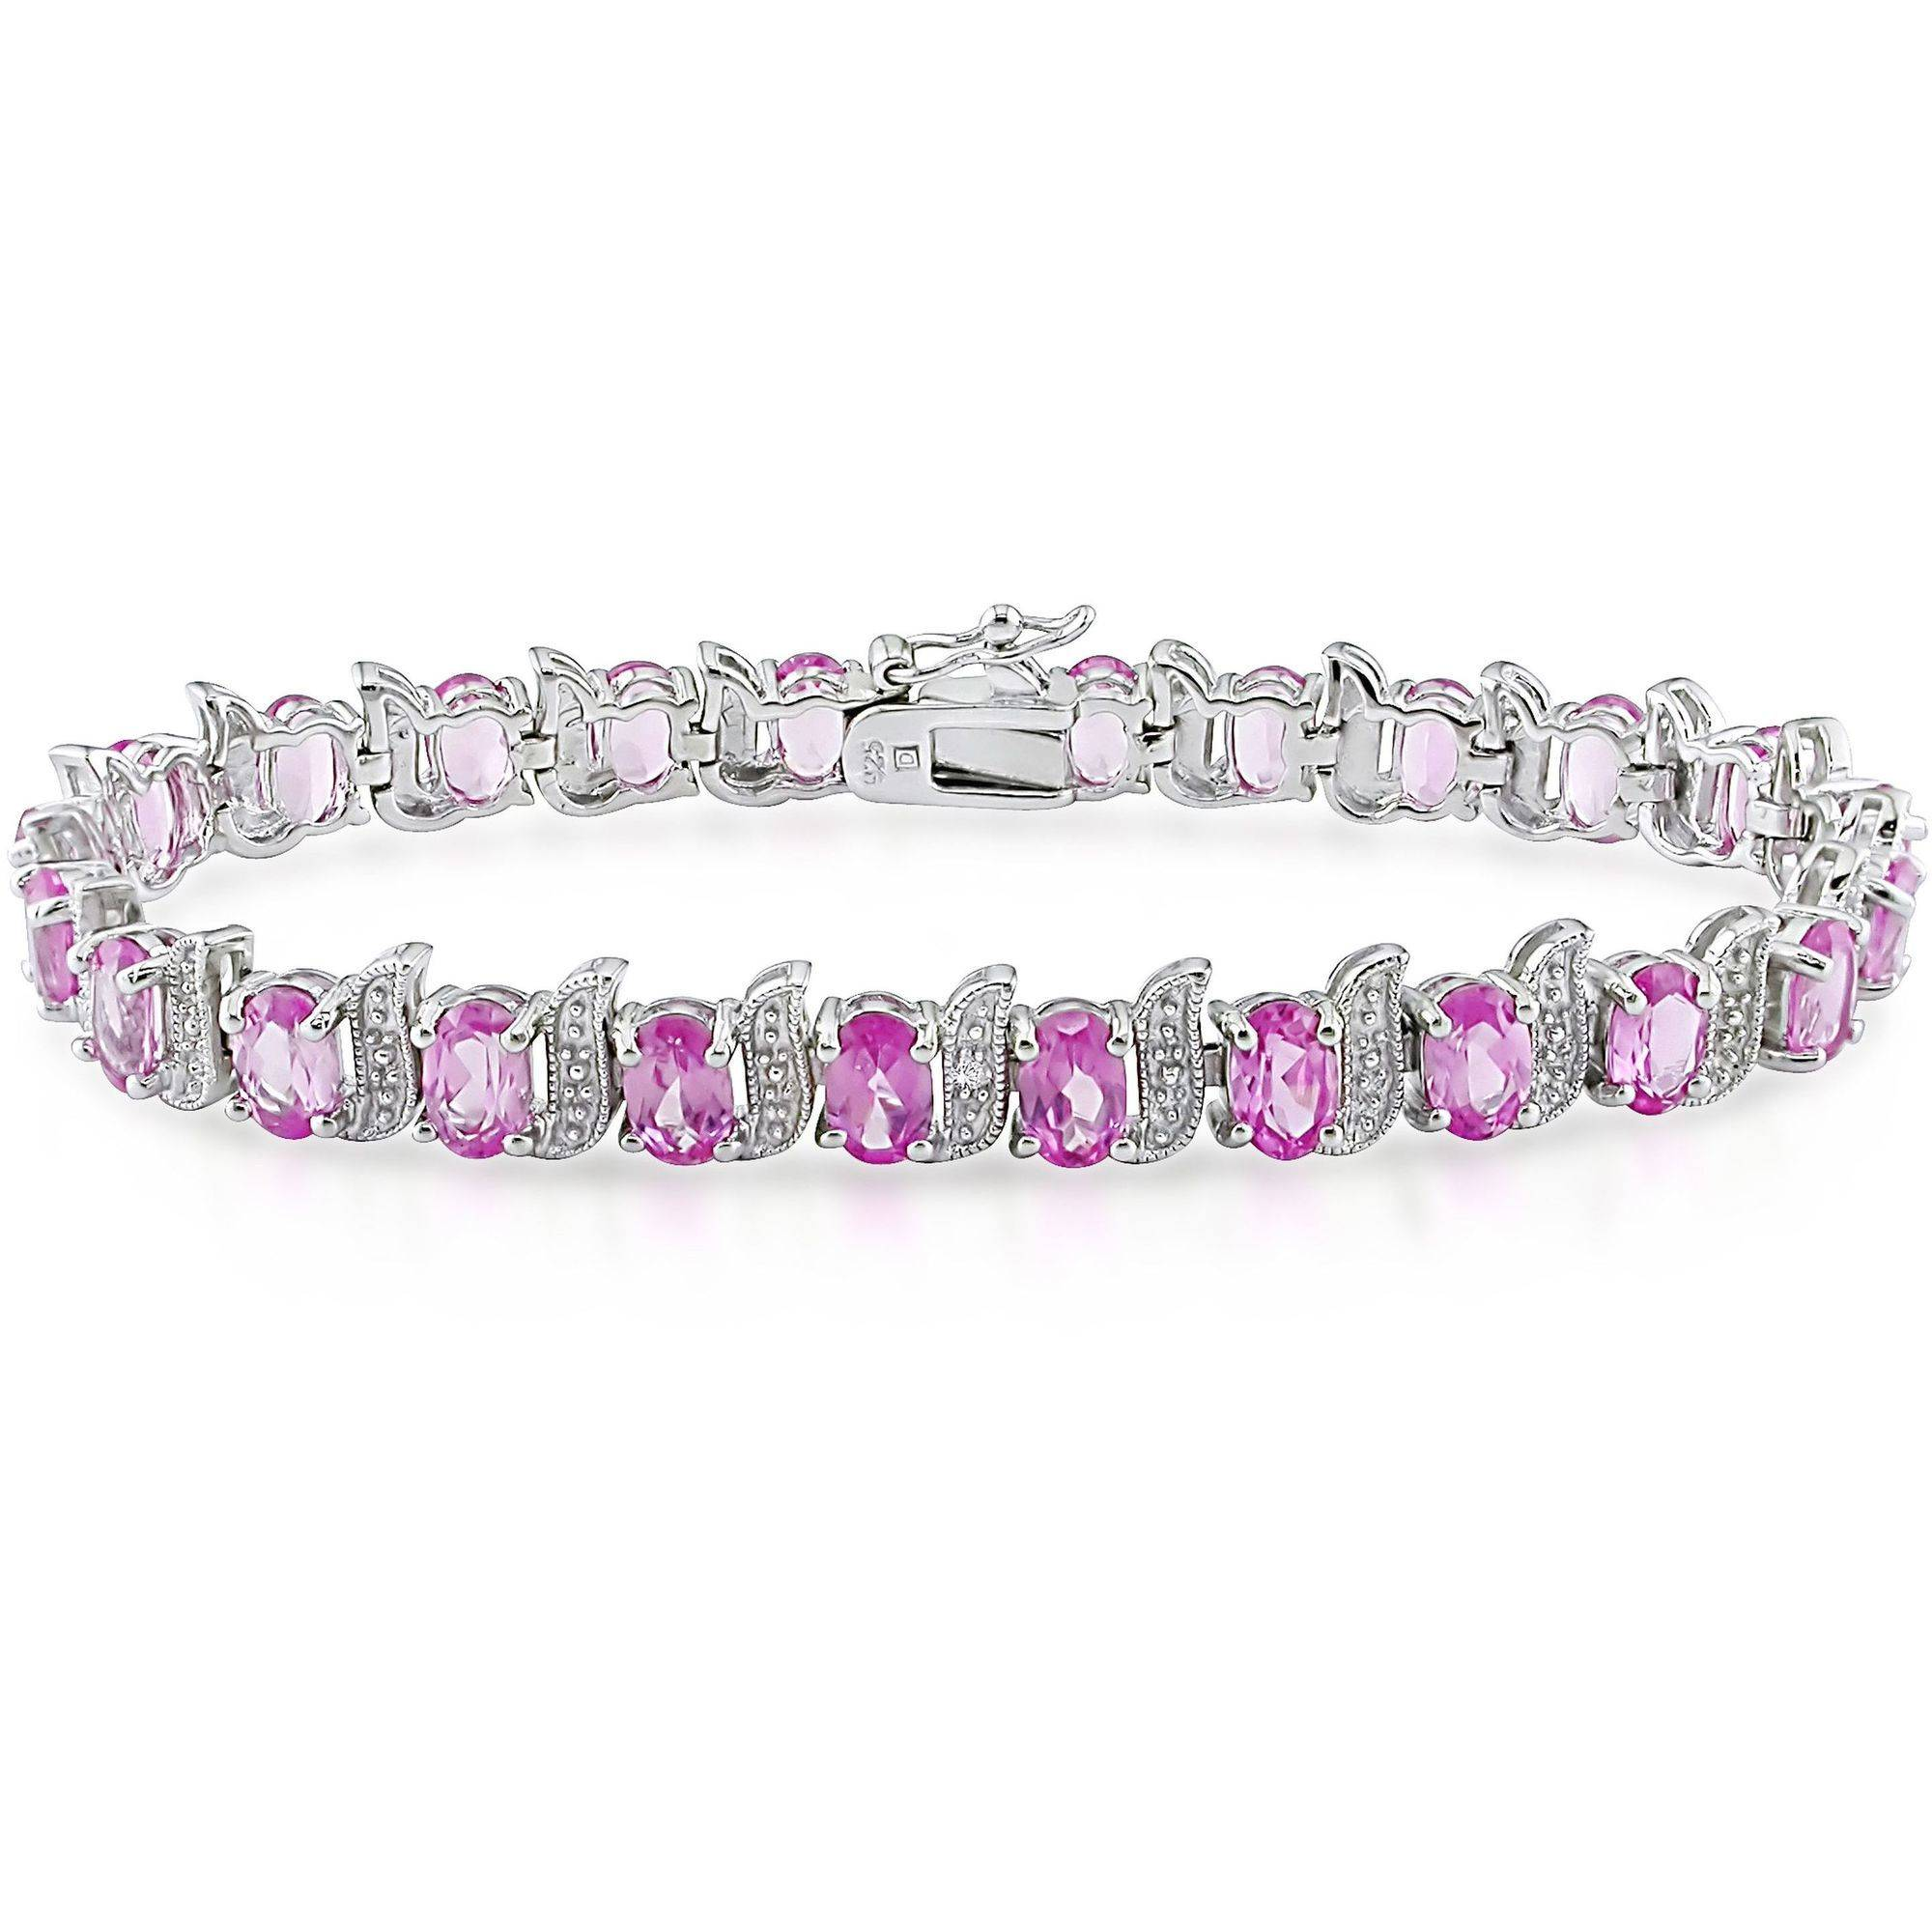 "Tangelo 14-1 2 Carat T.G.W. Created Pink Sapphire and Diamond-Accent Sterling Silver Tennis Bracelet, 7.25"" by Tangelo"